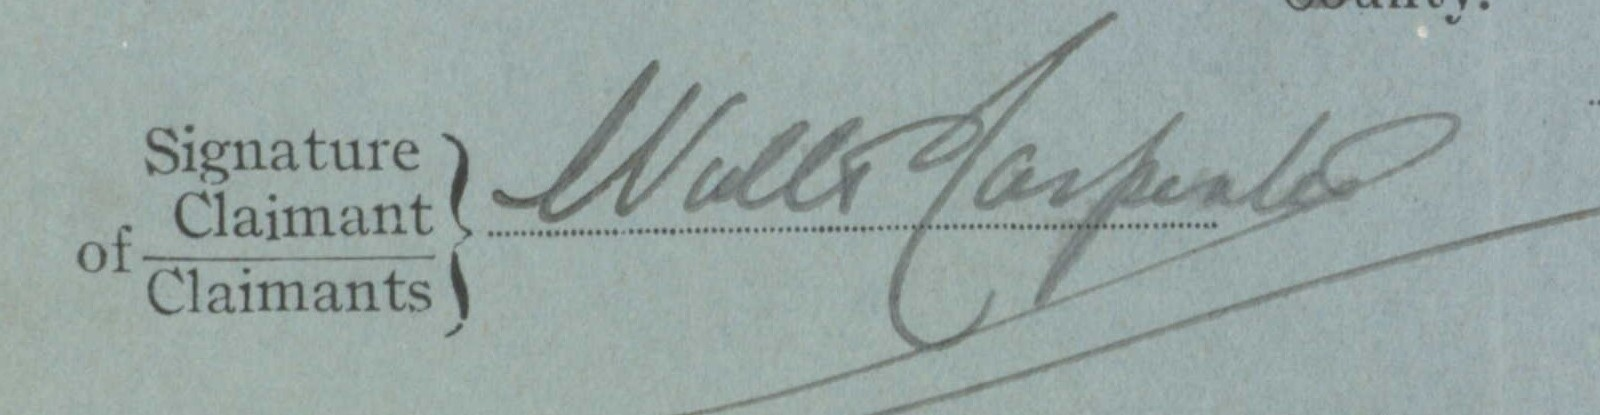 Walter Carpentersignature (2)